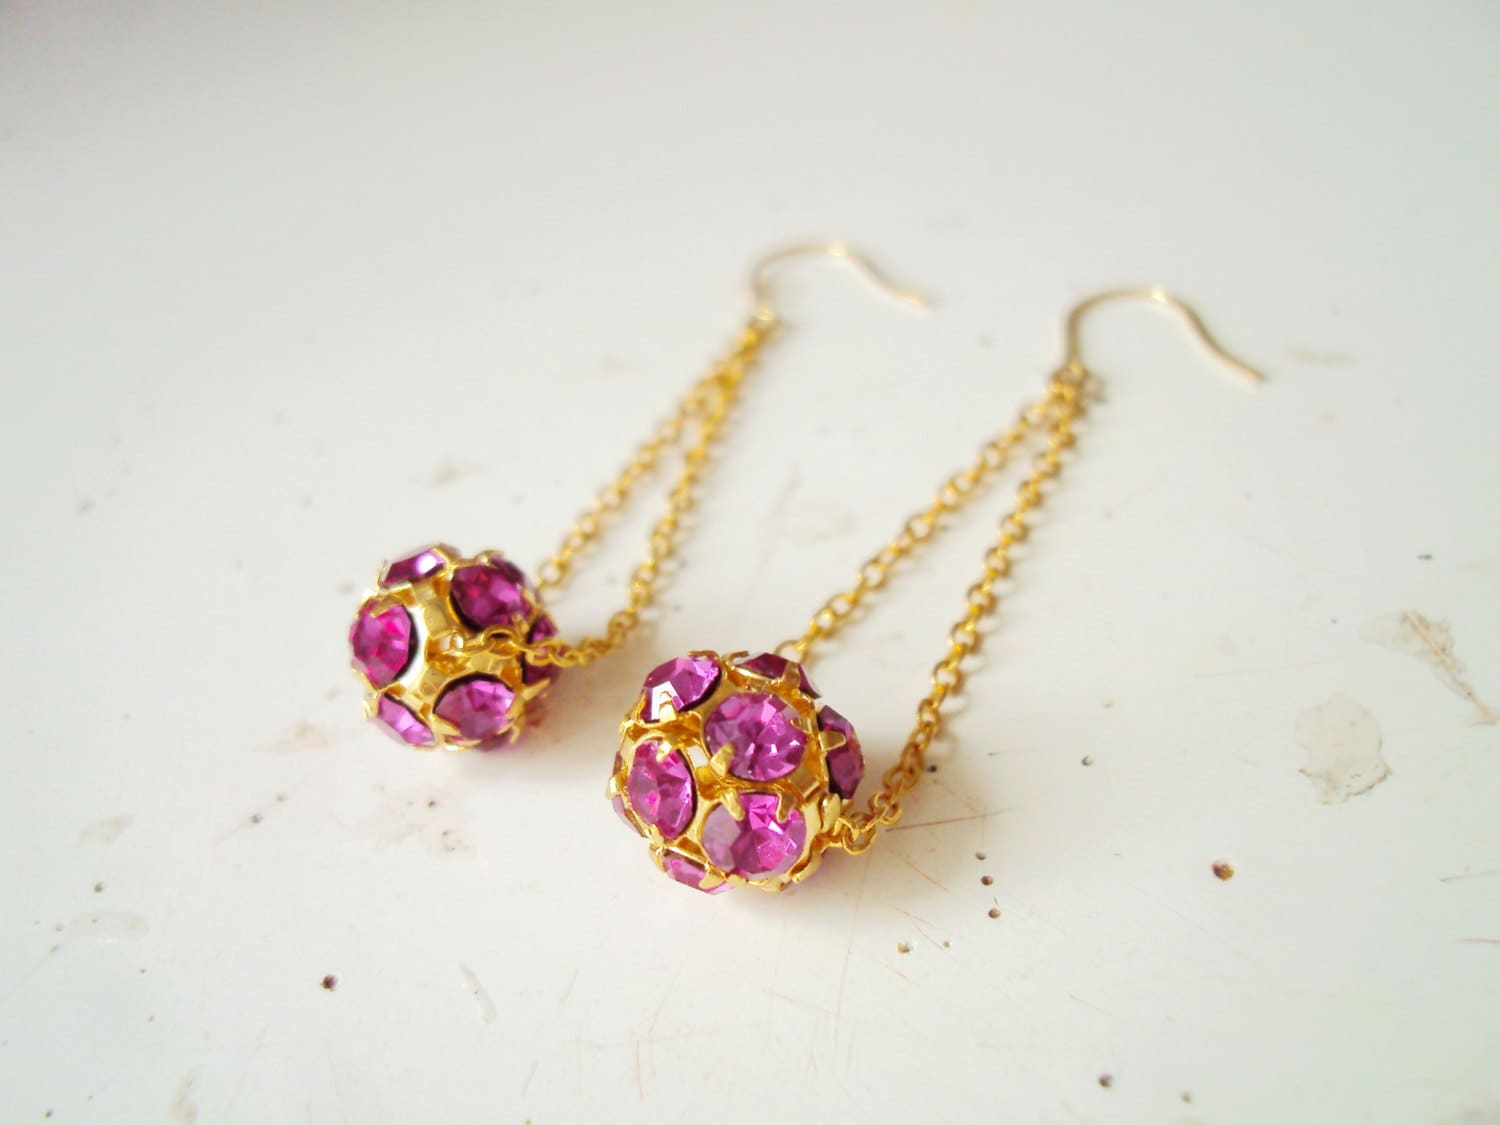 Gold Chain Earrings, Fuchsia Rhinestone Balls, Long Crystal Earrings, Studded Ball Earrings, Dangle drop earrings - BijuBrill